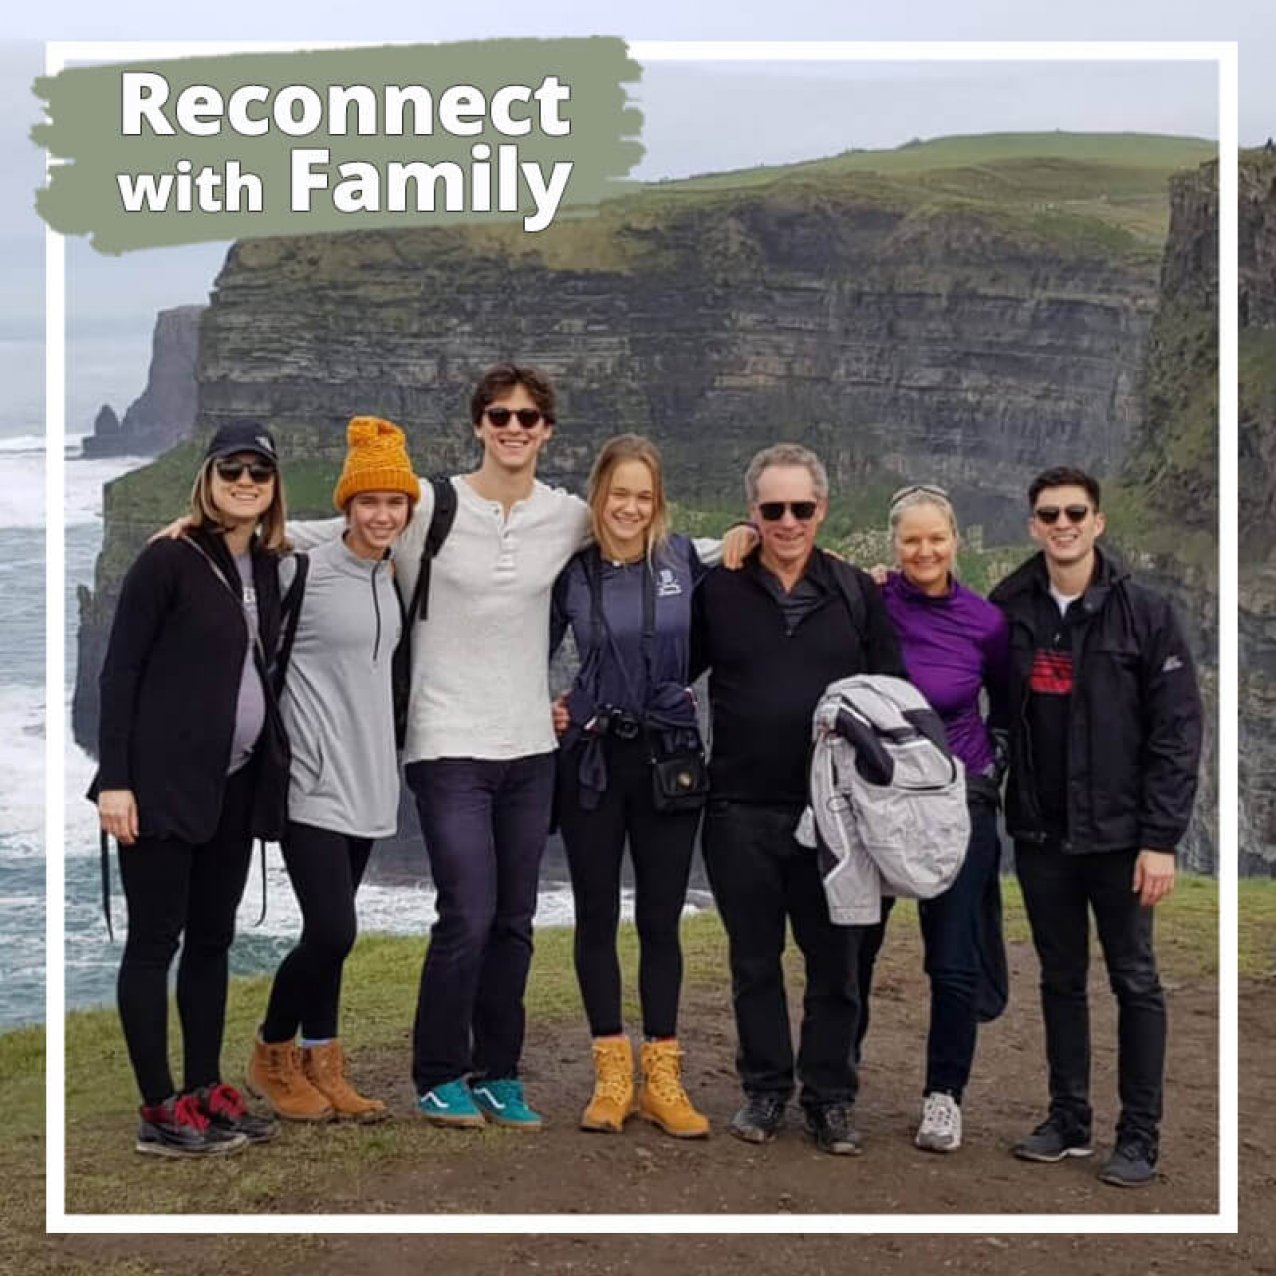 Reconnect with family on the Cliffs of Moher with a private tour of Ireland